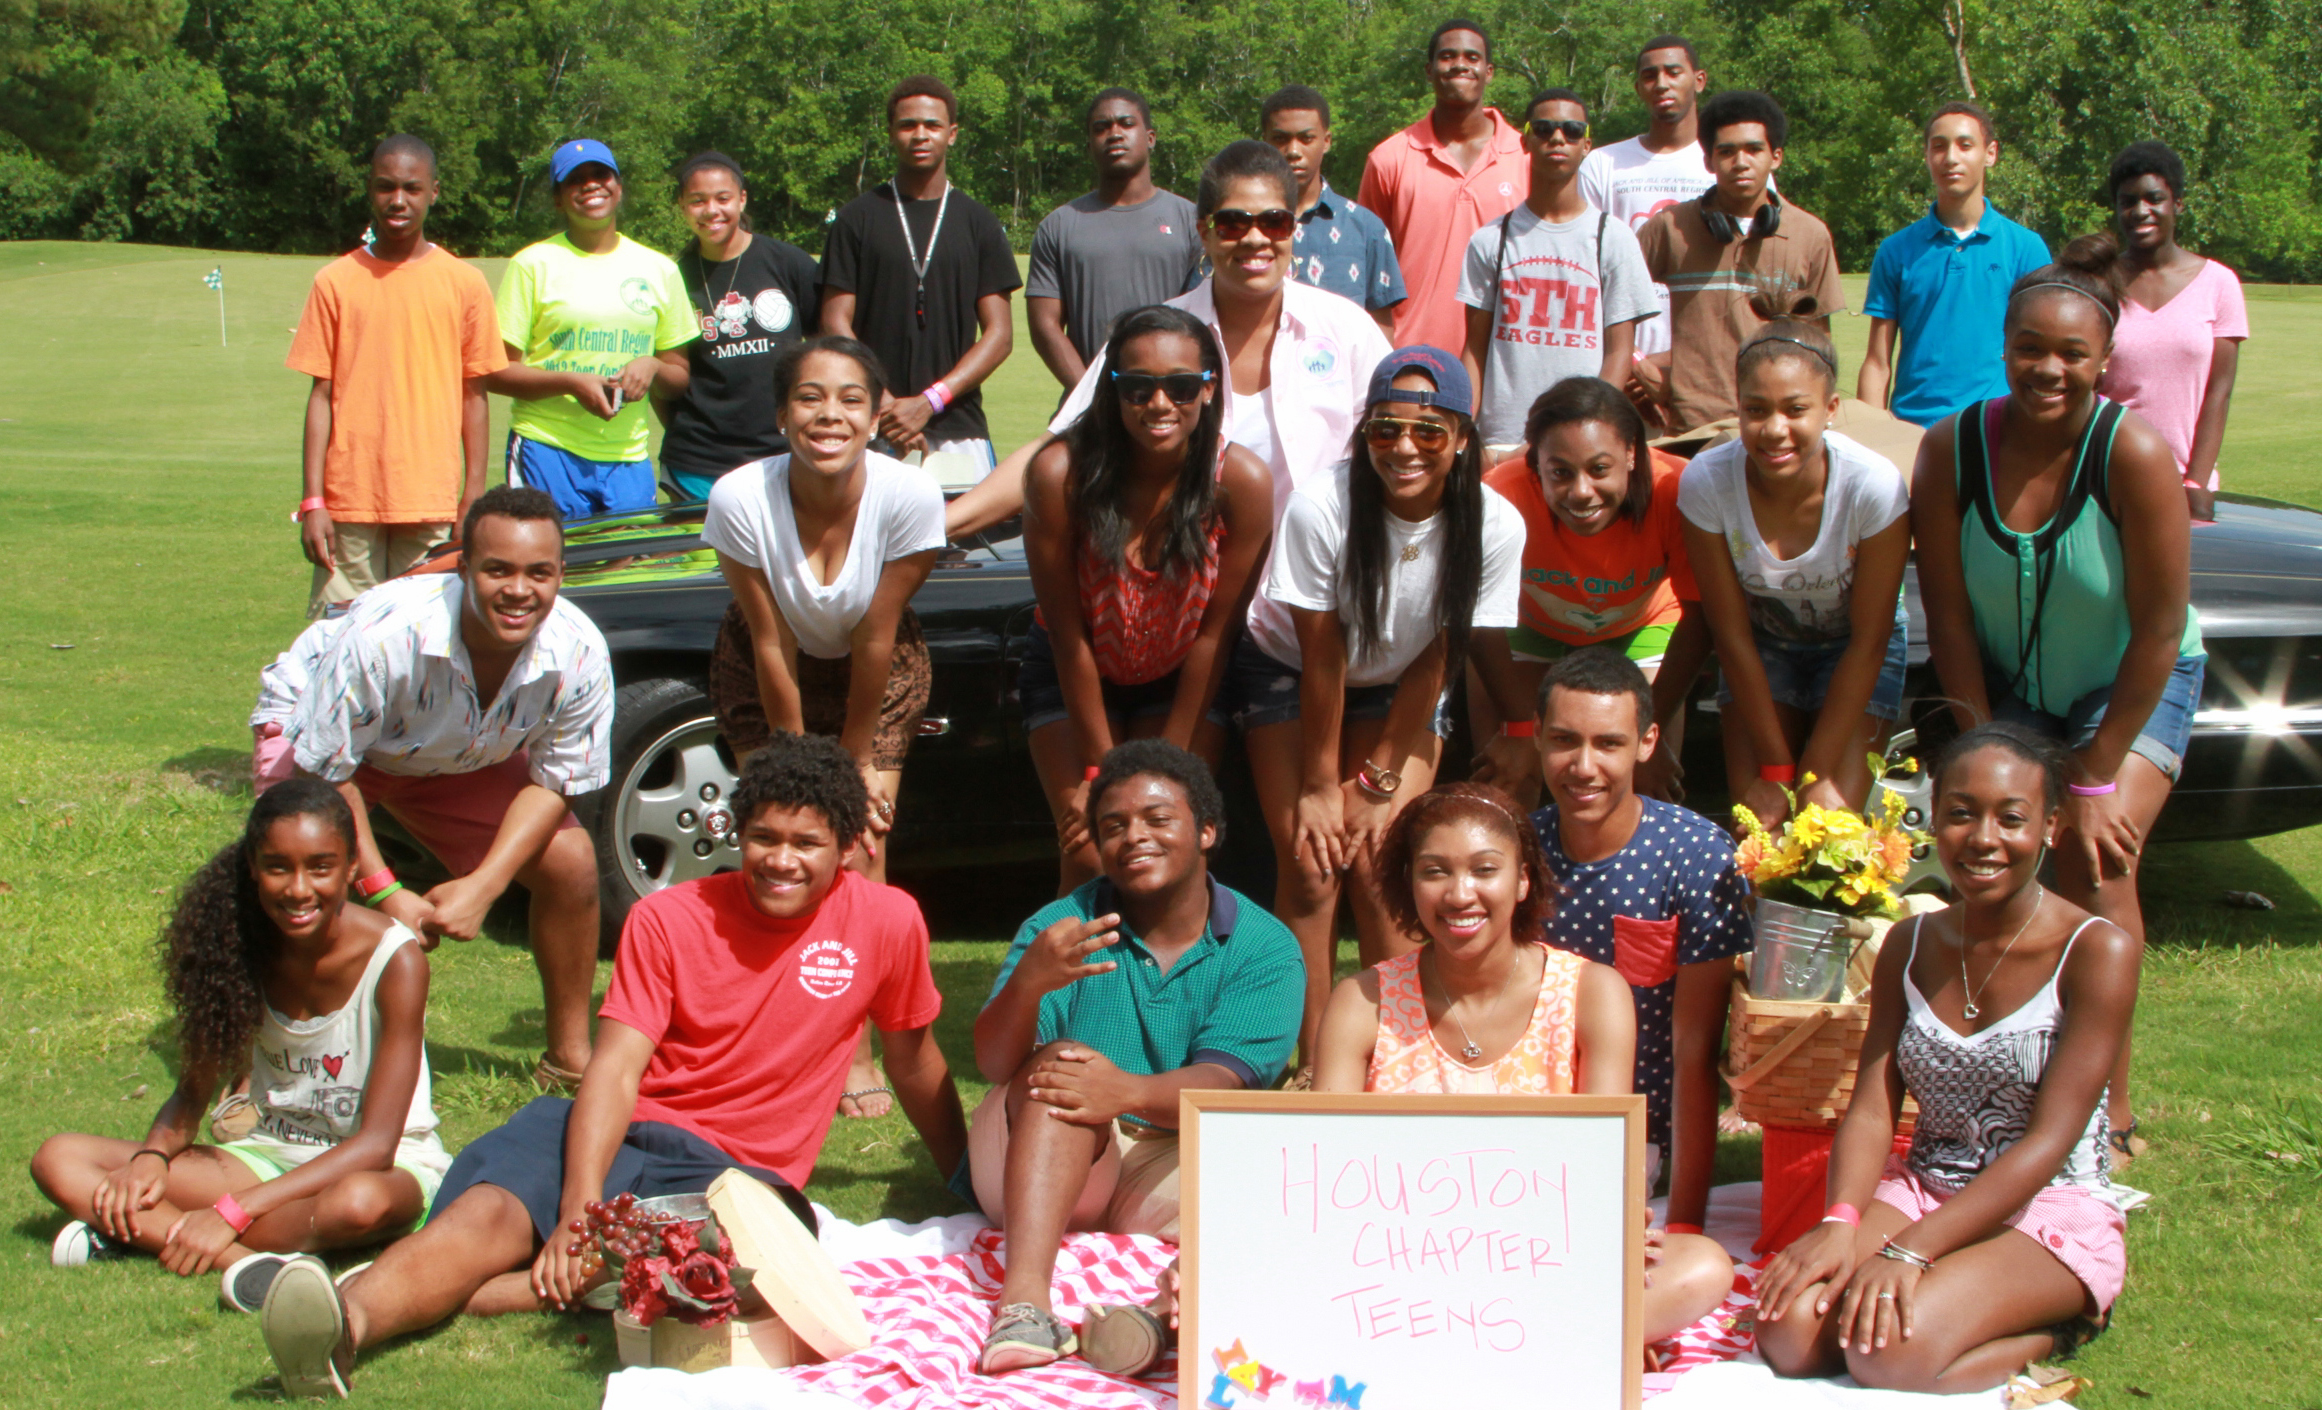 Teen Picture. Chapter Picnic 2013